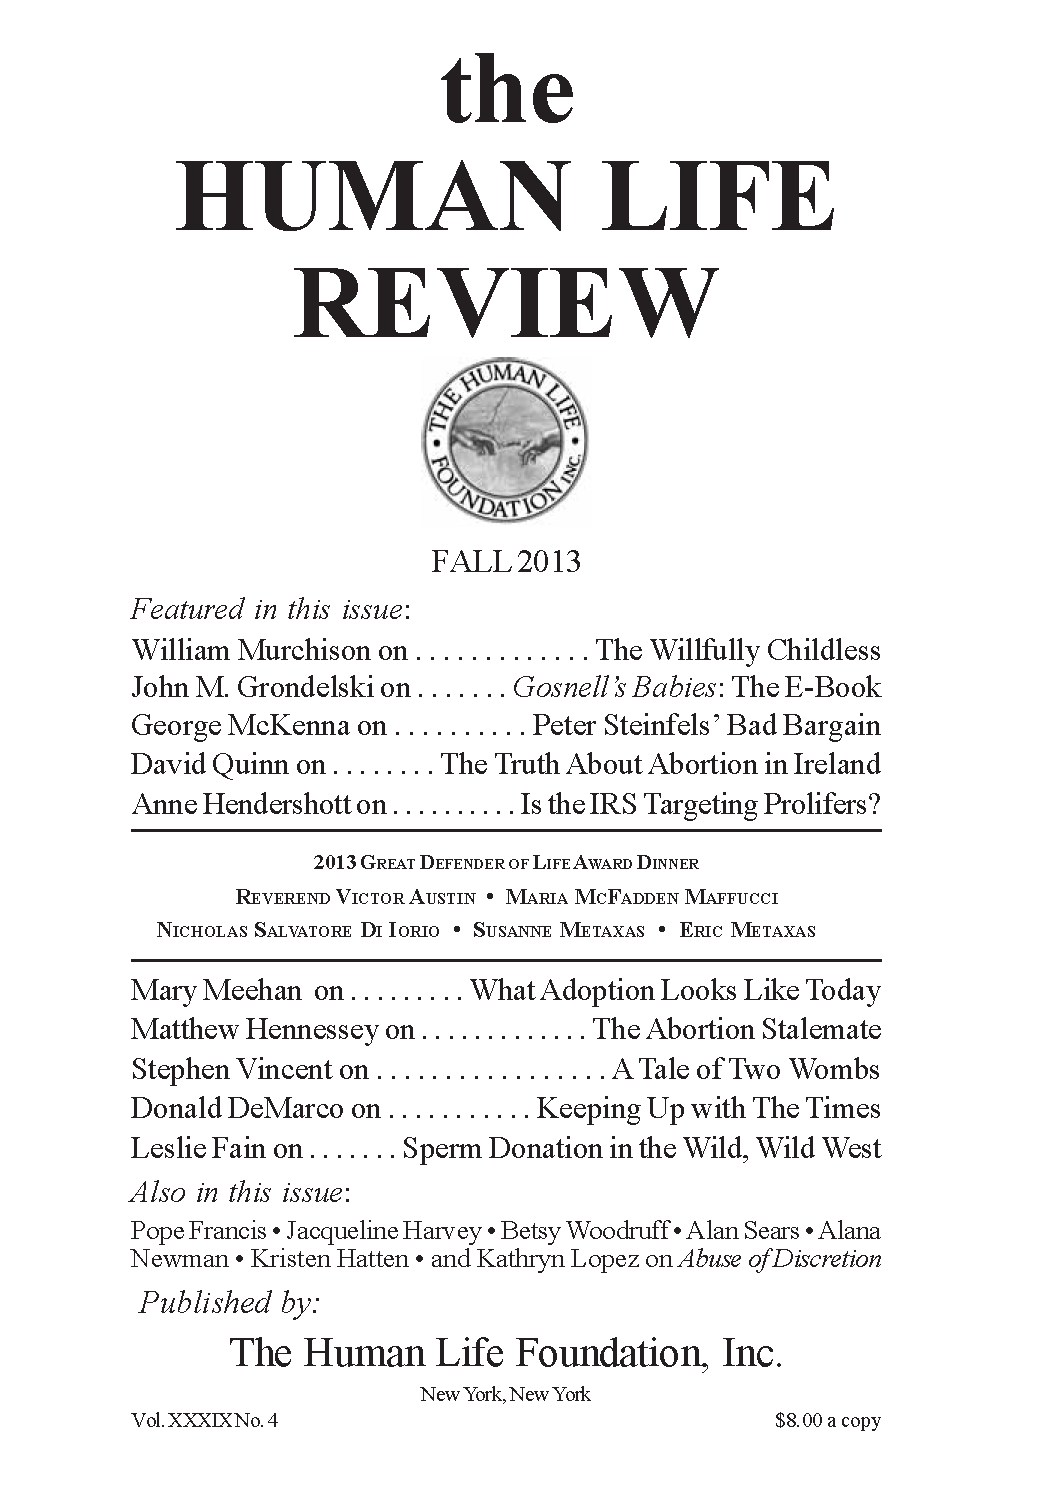 d774242ca5ab The Human Life Review Fall 2013 - The Human Life Review